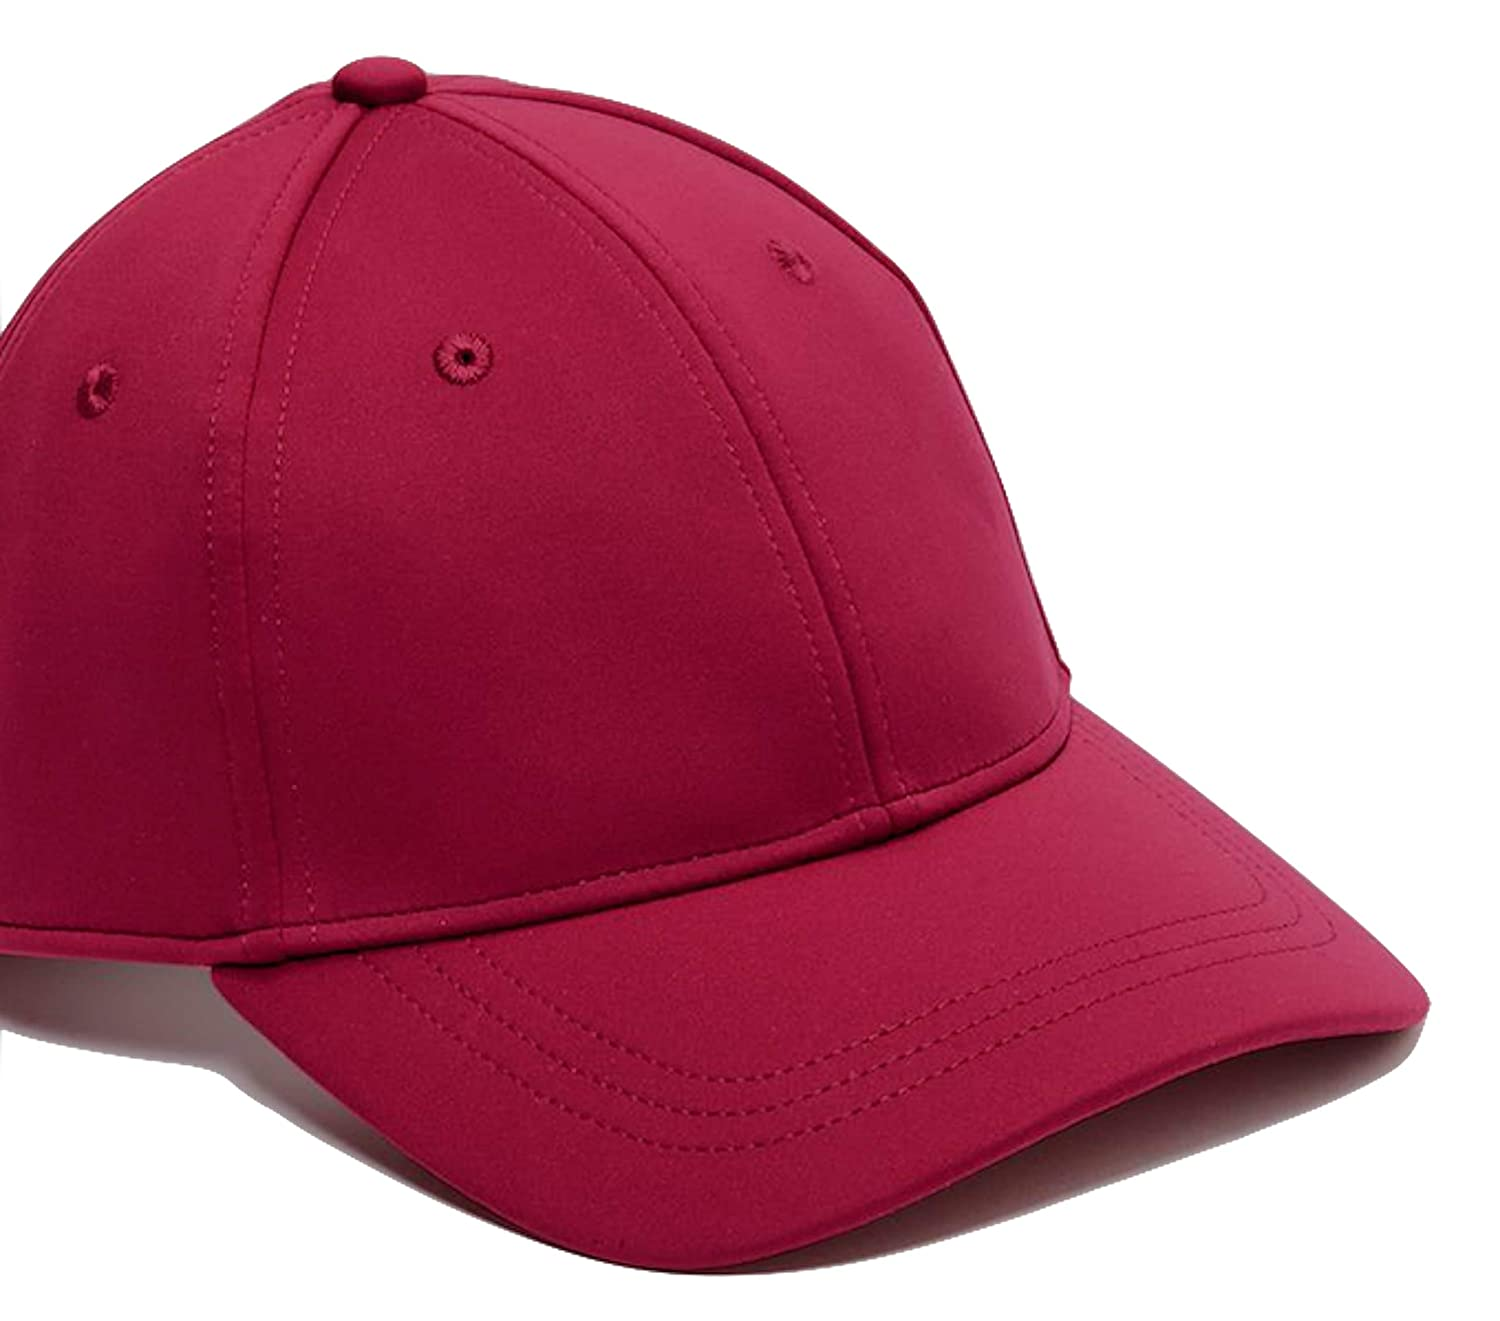 Lululemon Baller HAT - RUBR (Ruby Red) at Amazon Women s Clothing store  a5663fef063